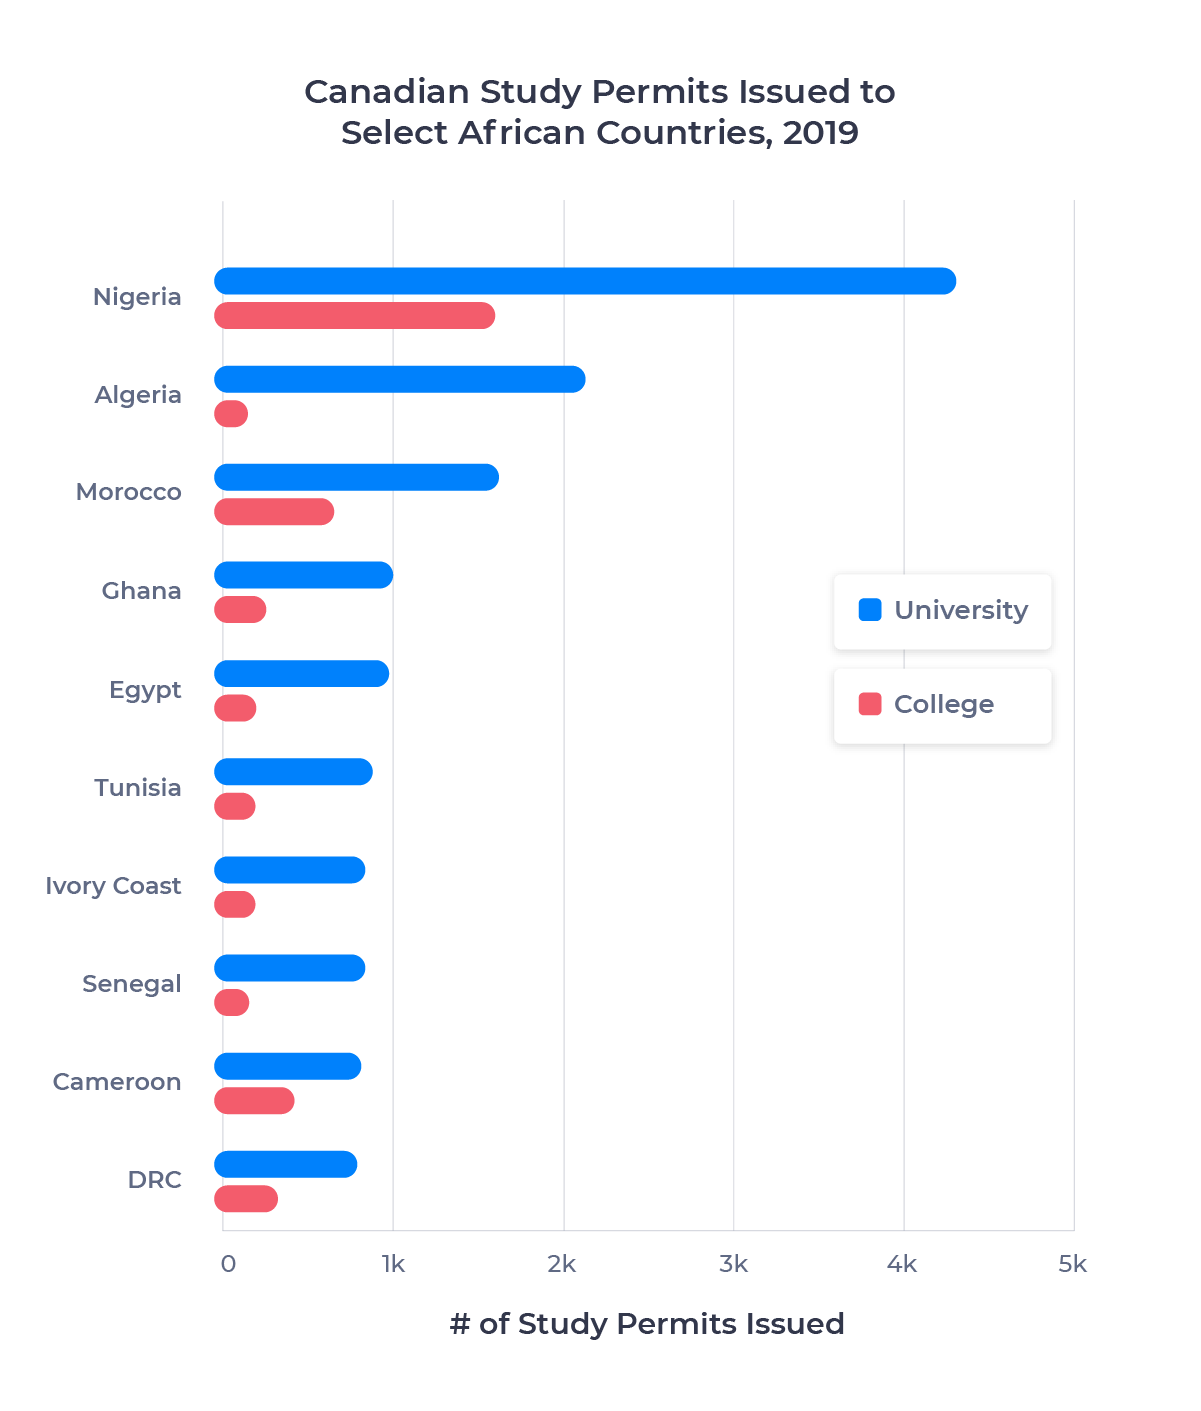 Bar chart showing the number of Canadian study permits issued to 10 African countries in 2019 for college and university study. Described in detail below.